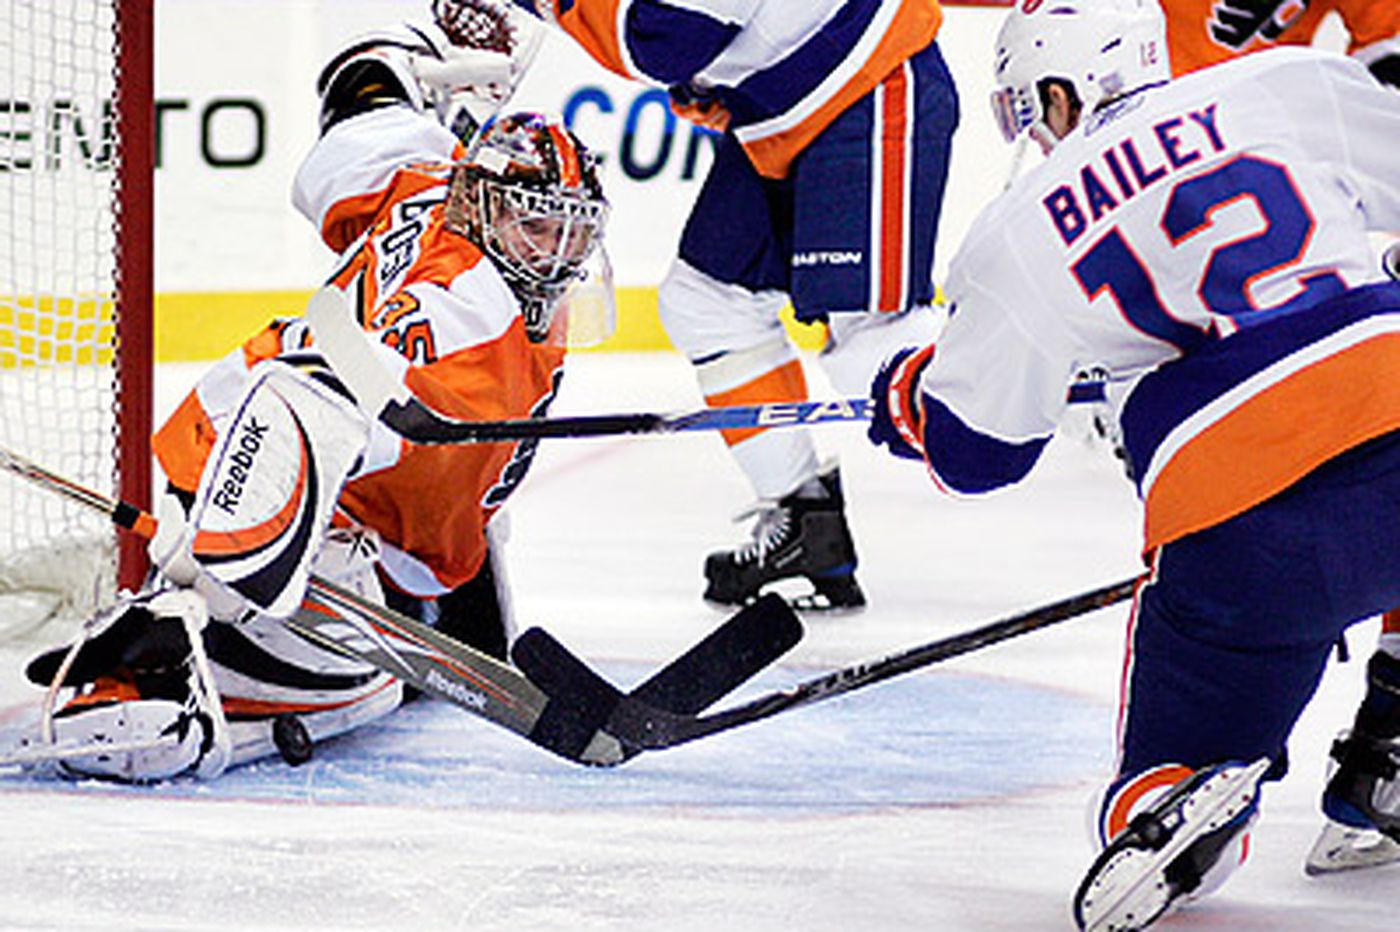 Back-to-back games are key to Flyers' progression